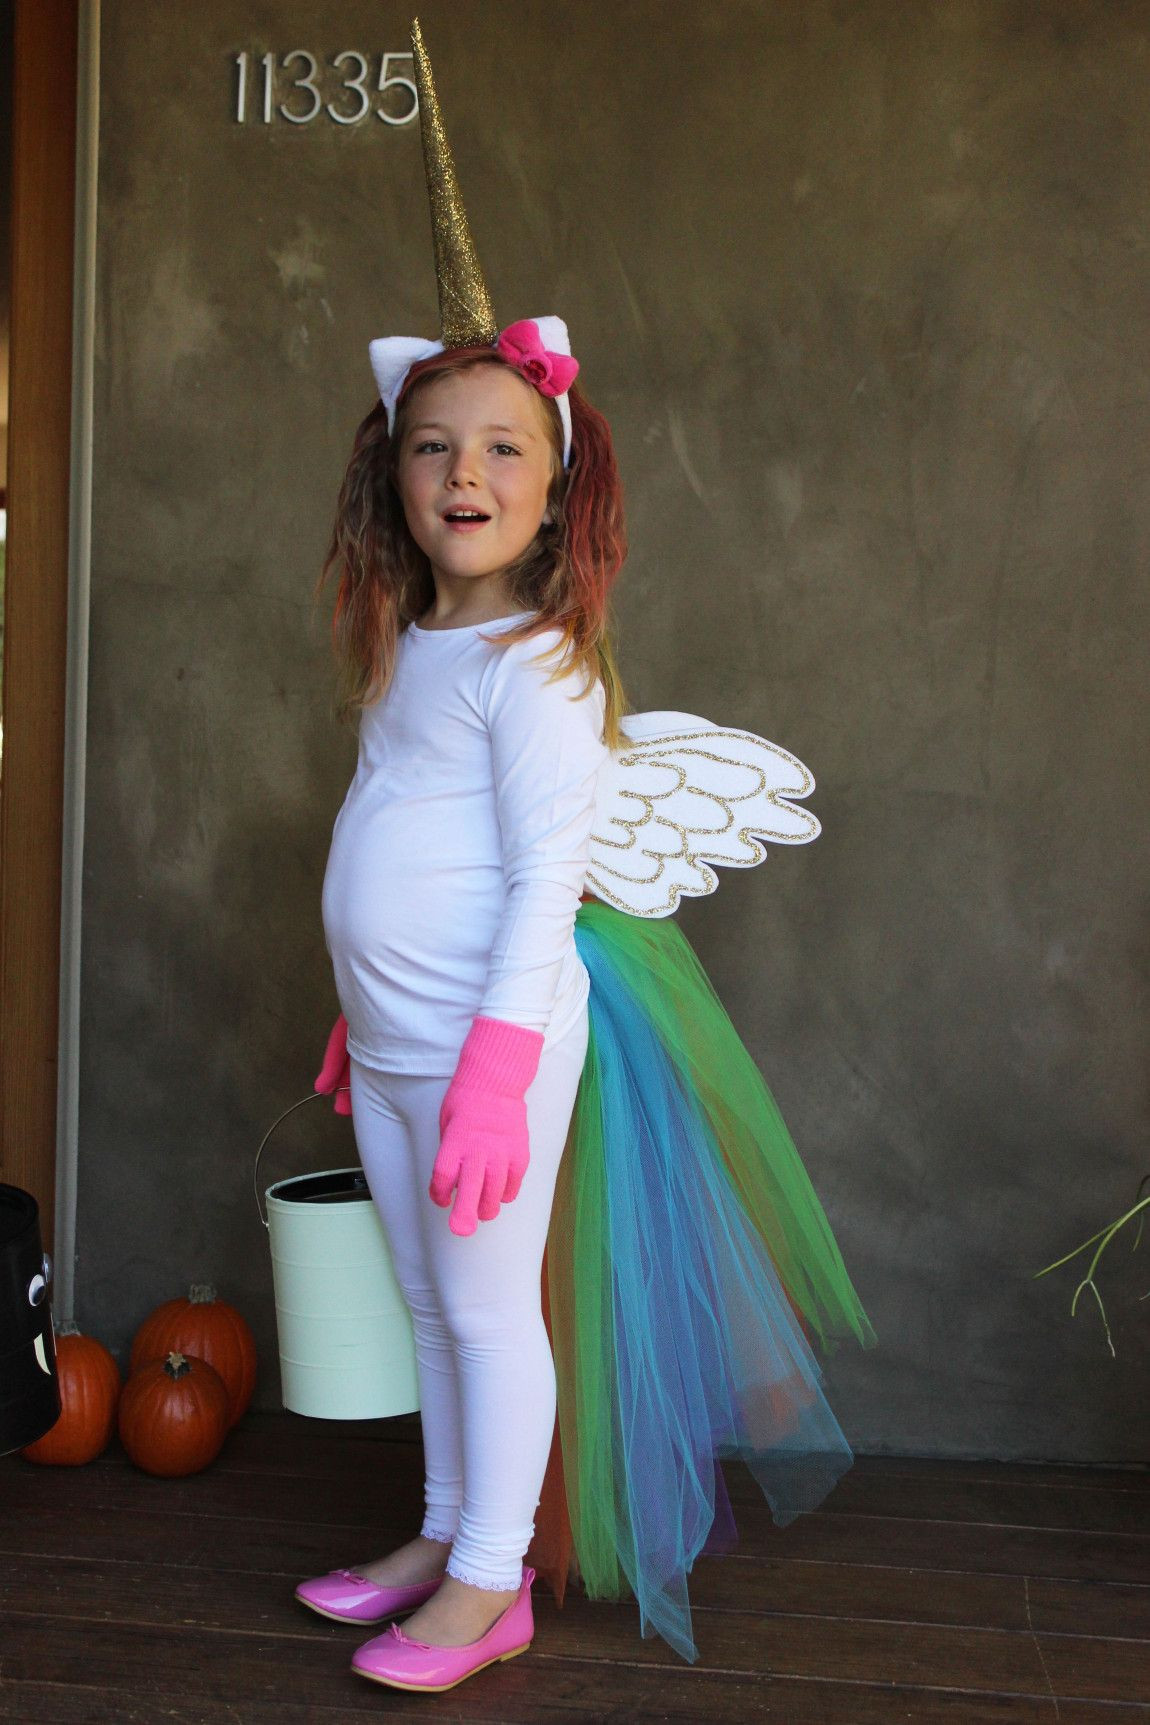 Best ideas about DIY Kids Costume . Save or Pin 50 Best DIY Halloween Costumes For Kids in 2017 Now.